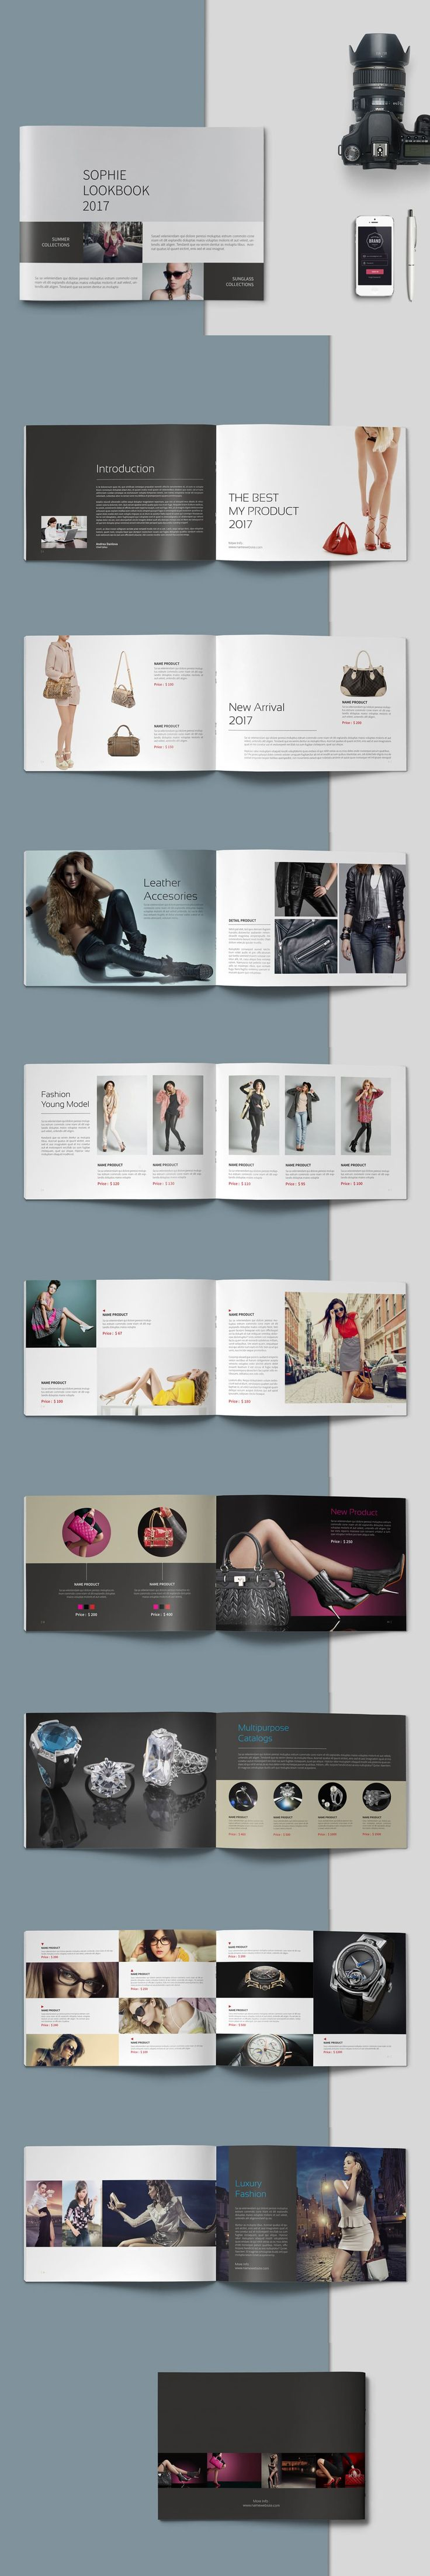 Fashion Lookbook Template InDesign INDD 20